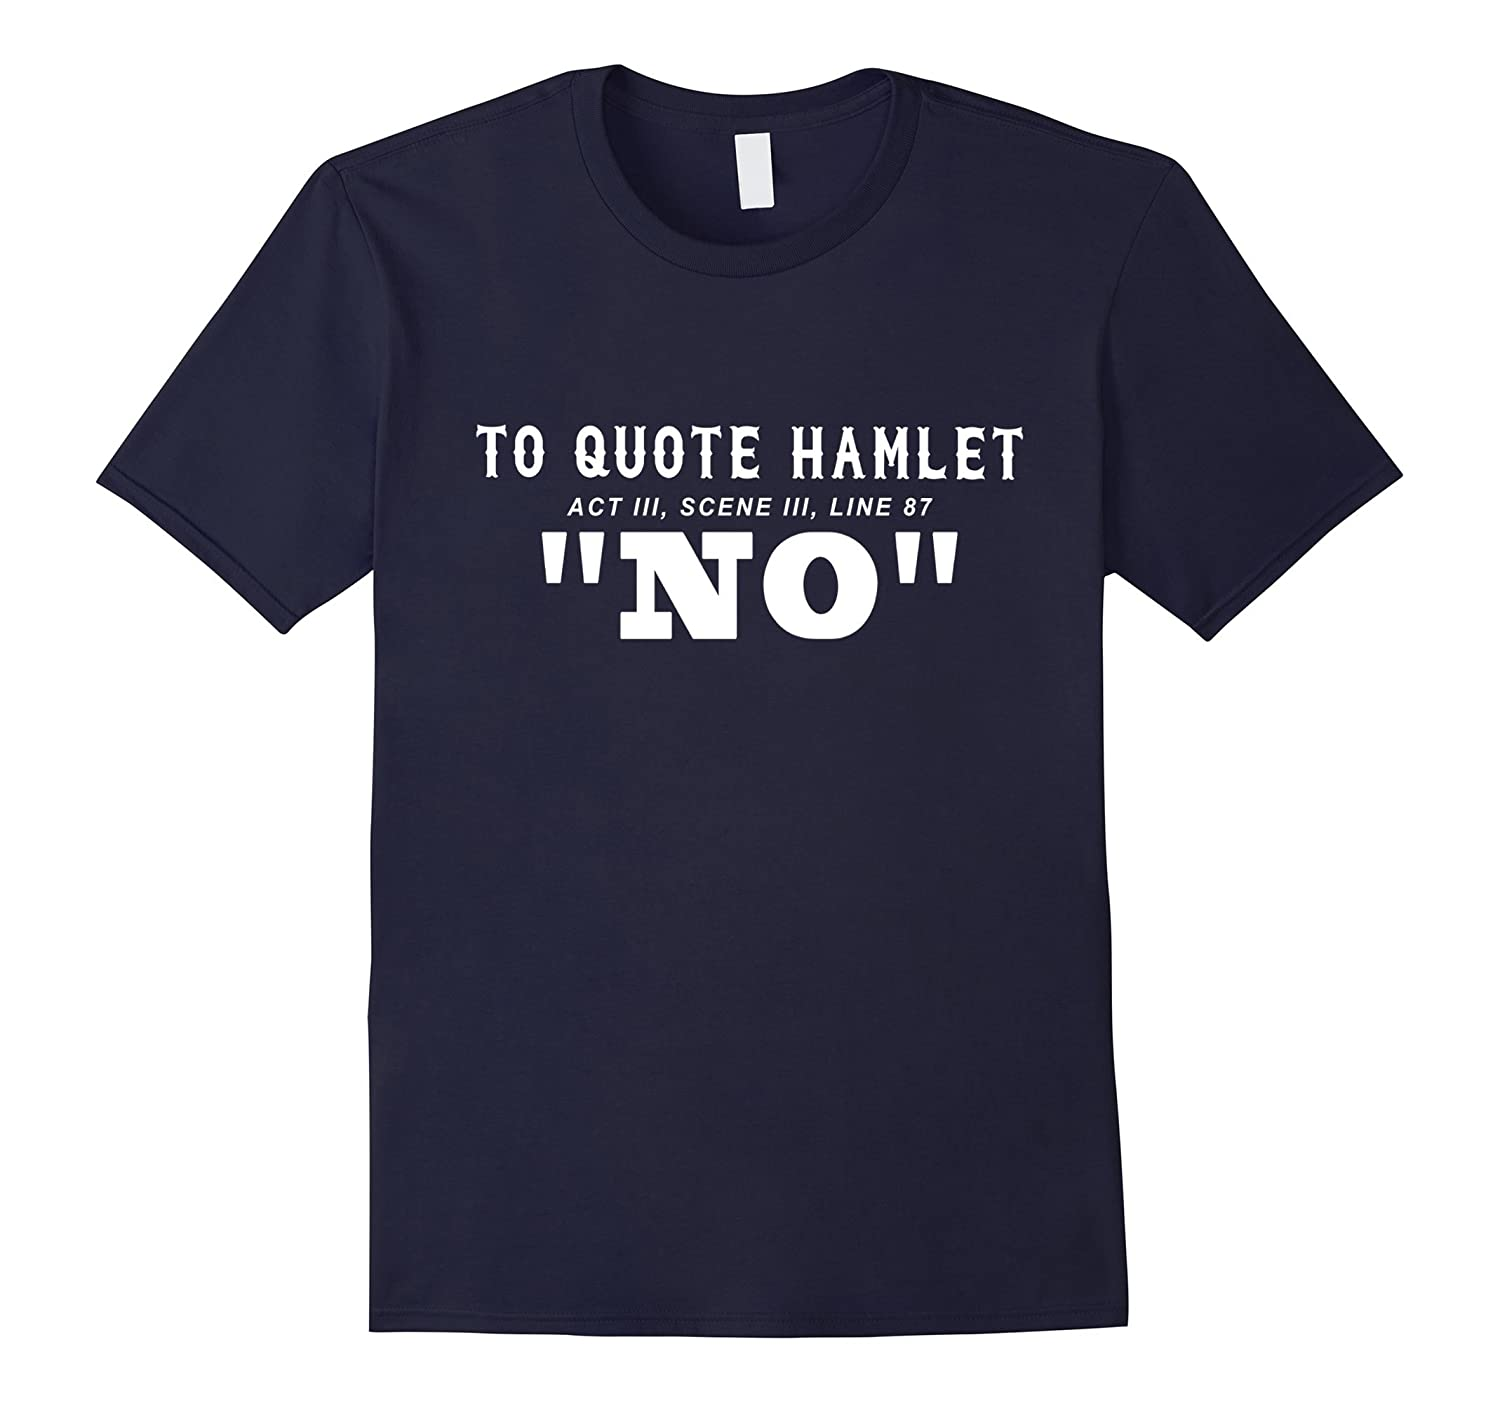 To quote hamlet no T-shirt hoodie ragian women men gift-TH